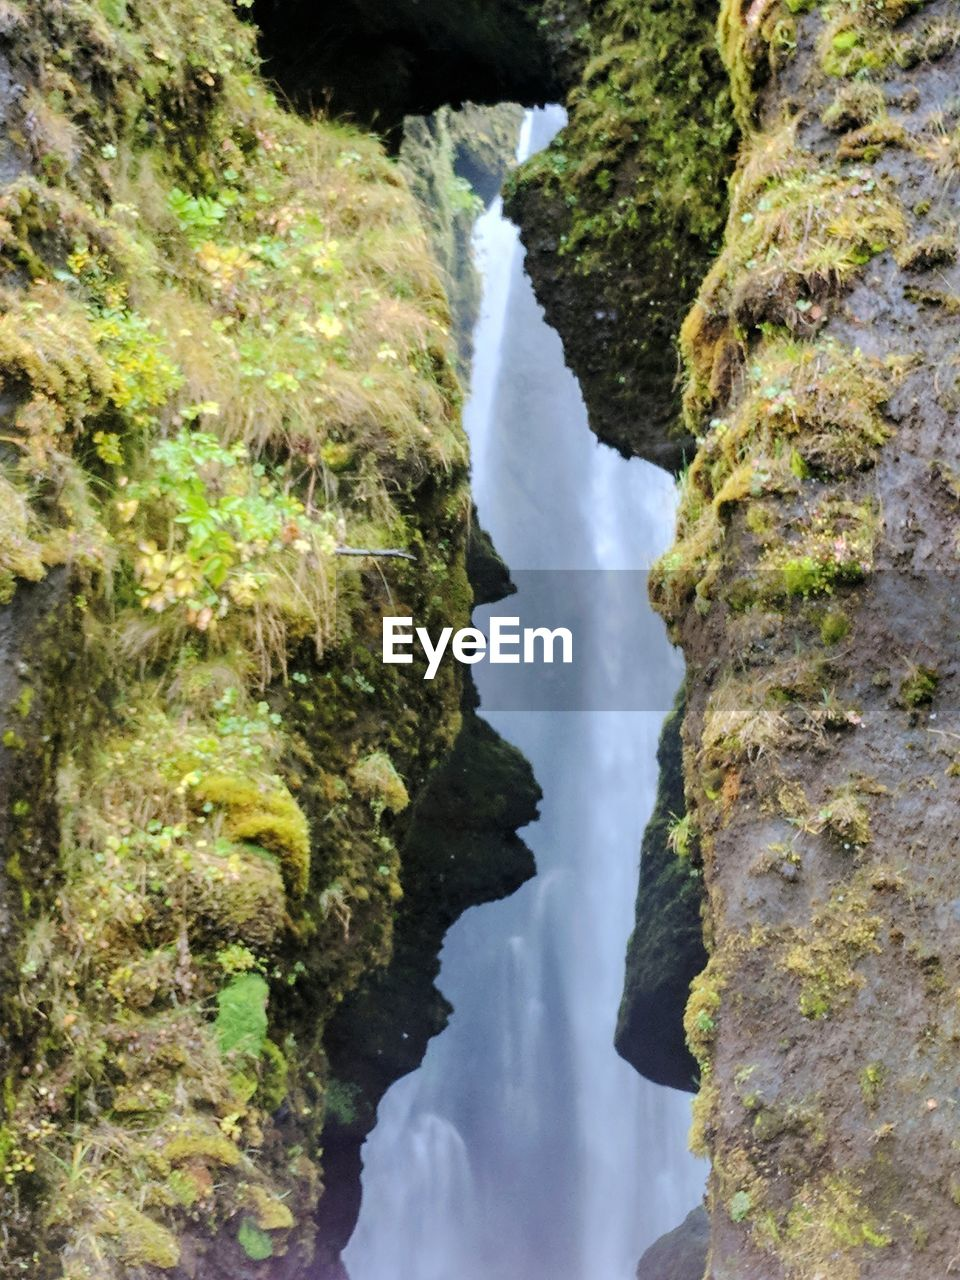 rock, water, beauty in nature, rock - object, waterfall, nature, plant, scenics - nature, no people, tree, solid, moss, outdoors, motion, forest, day, environment, growth, land, flowing water, flowing, power in nature